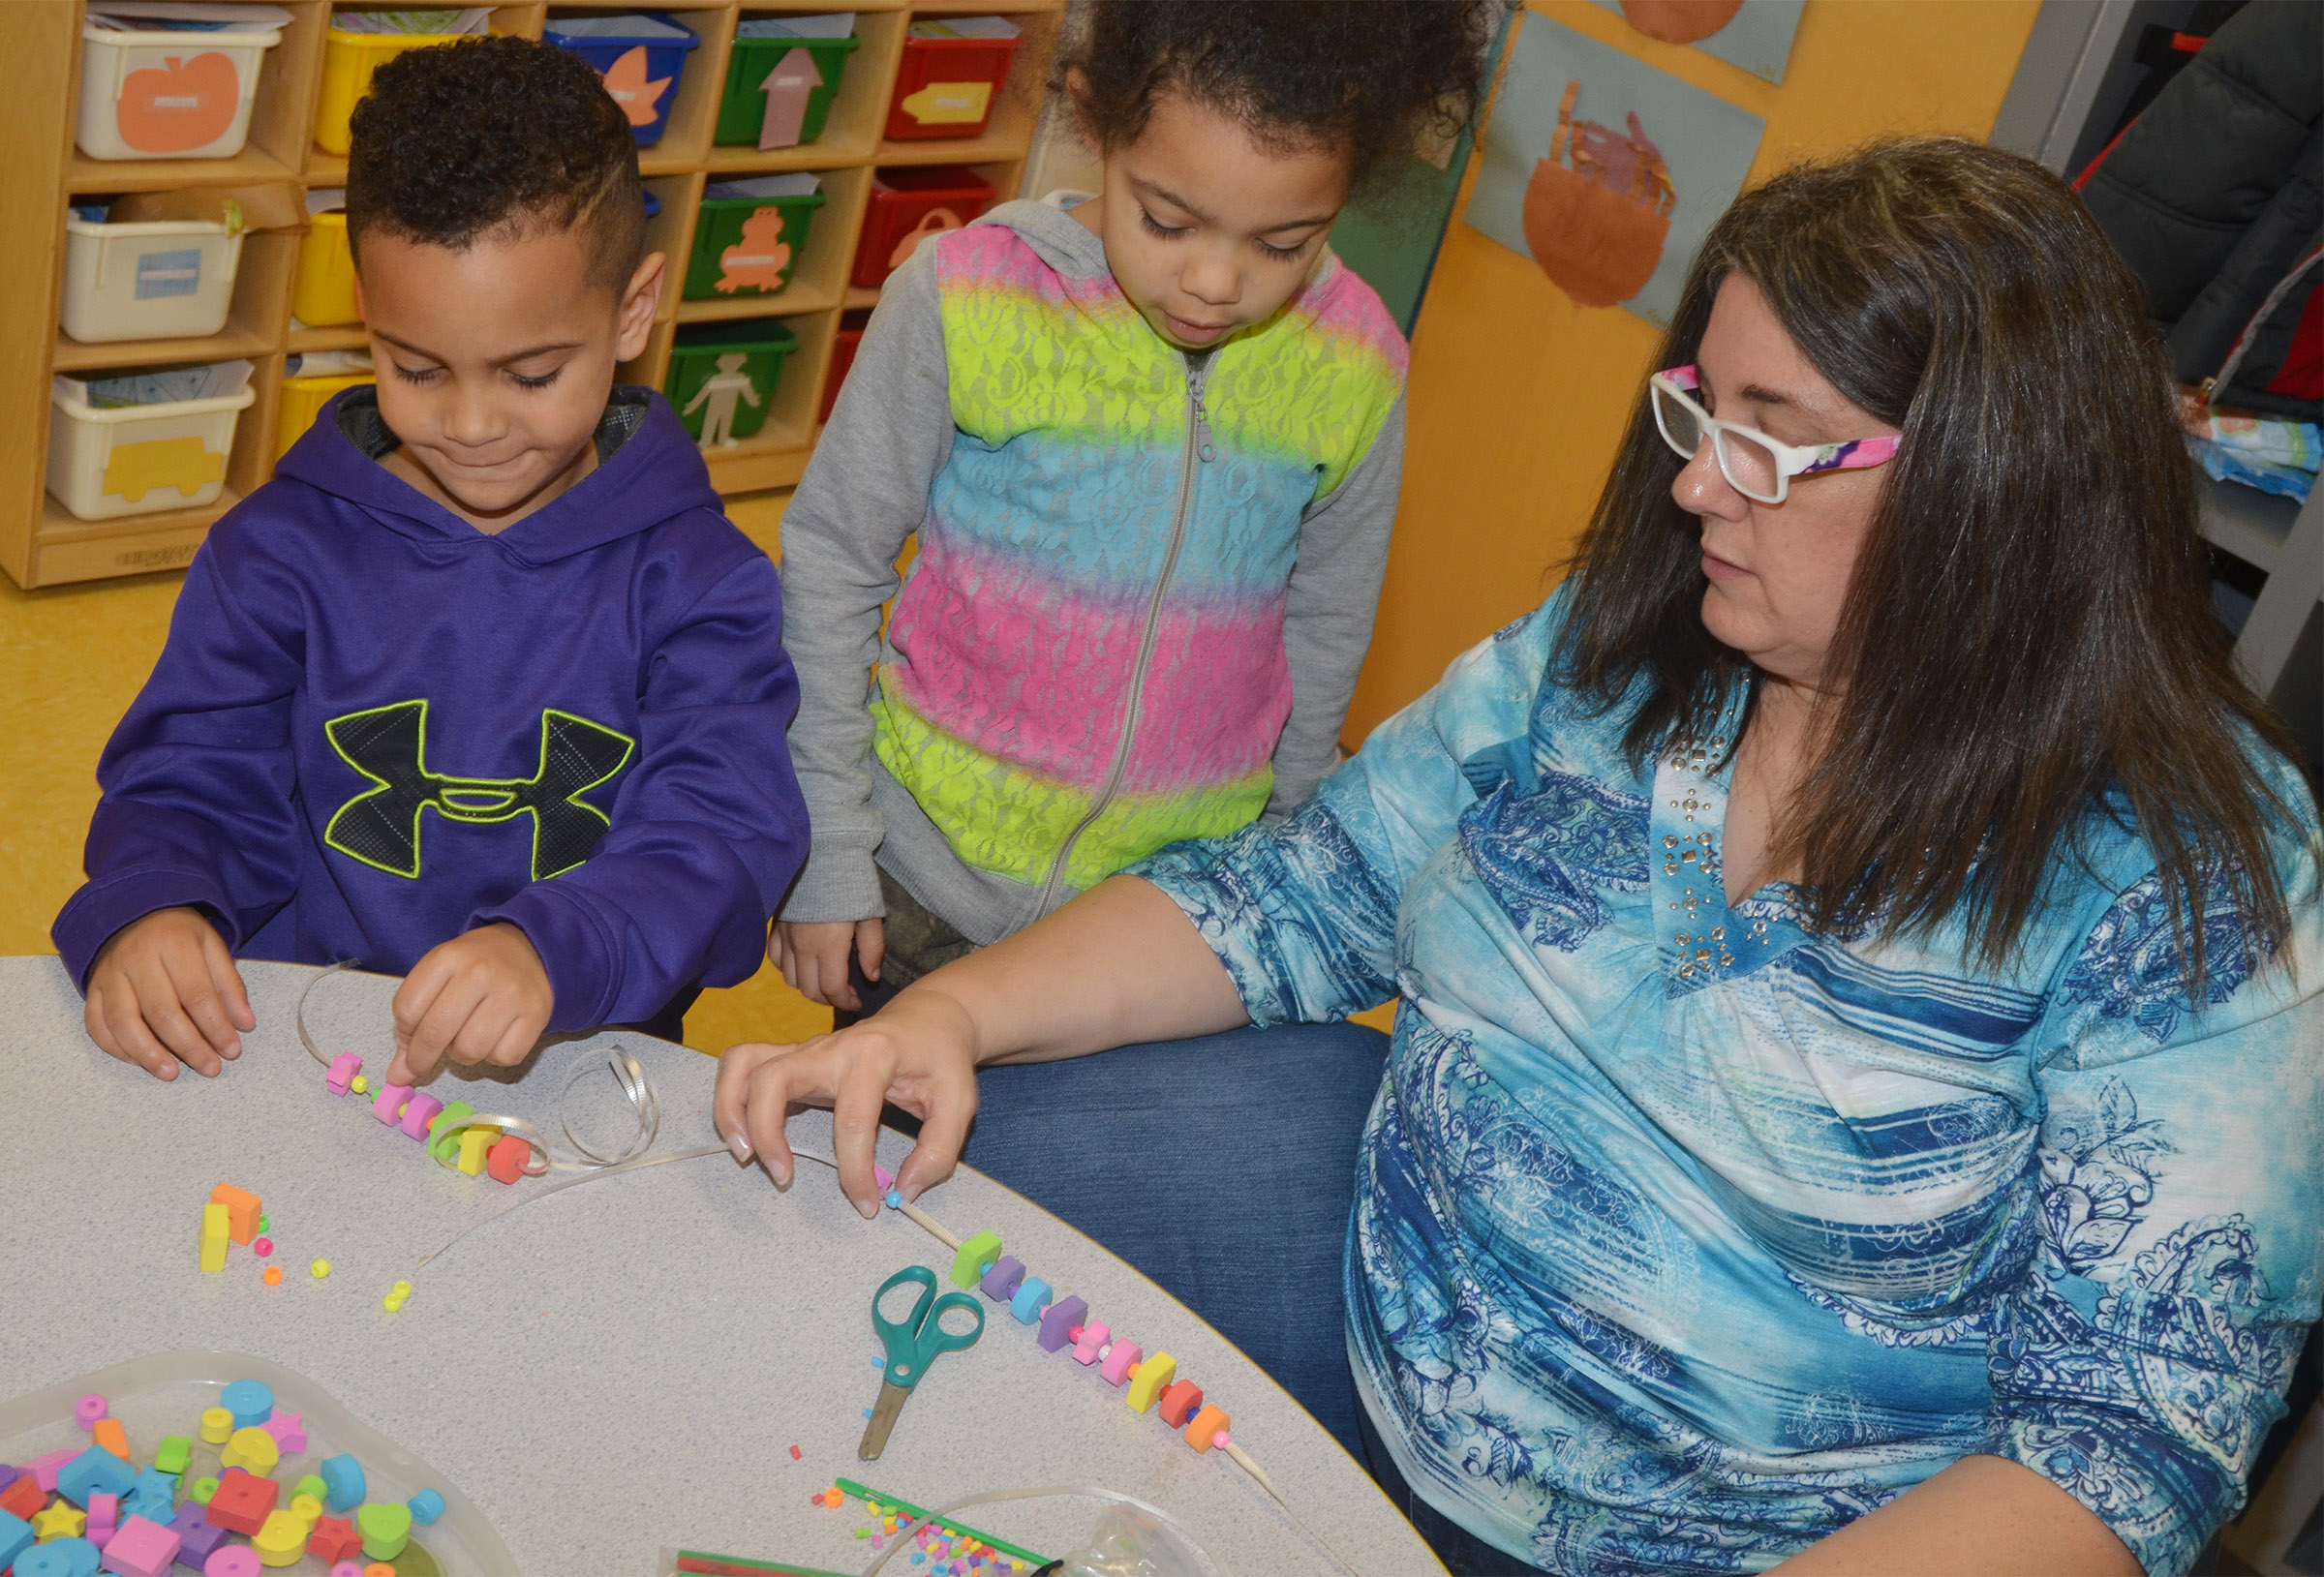 CES preschool teacher Sherry Cowherd helps students Kingston Cowherd, at left, and Rylee Karr make necklaces with a color and shape pattern.